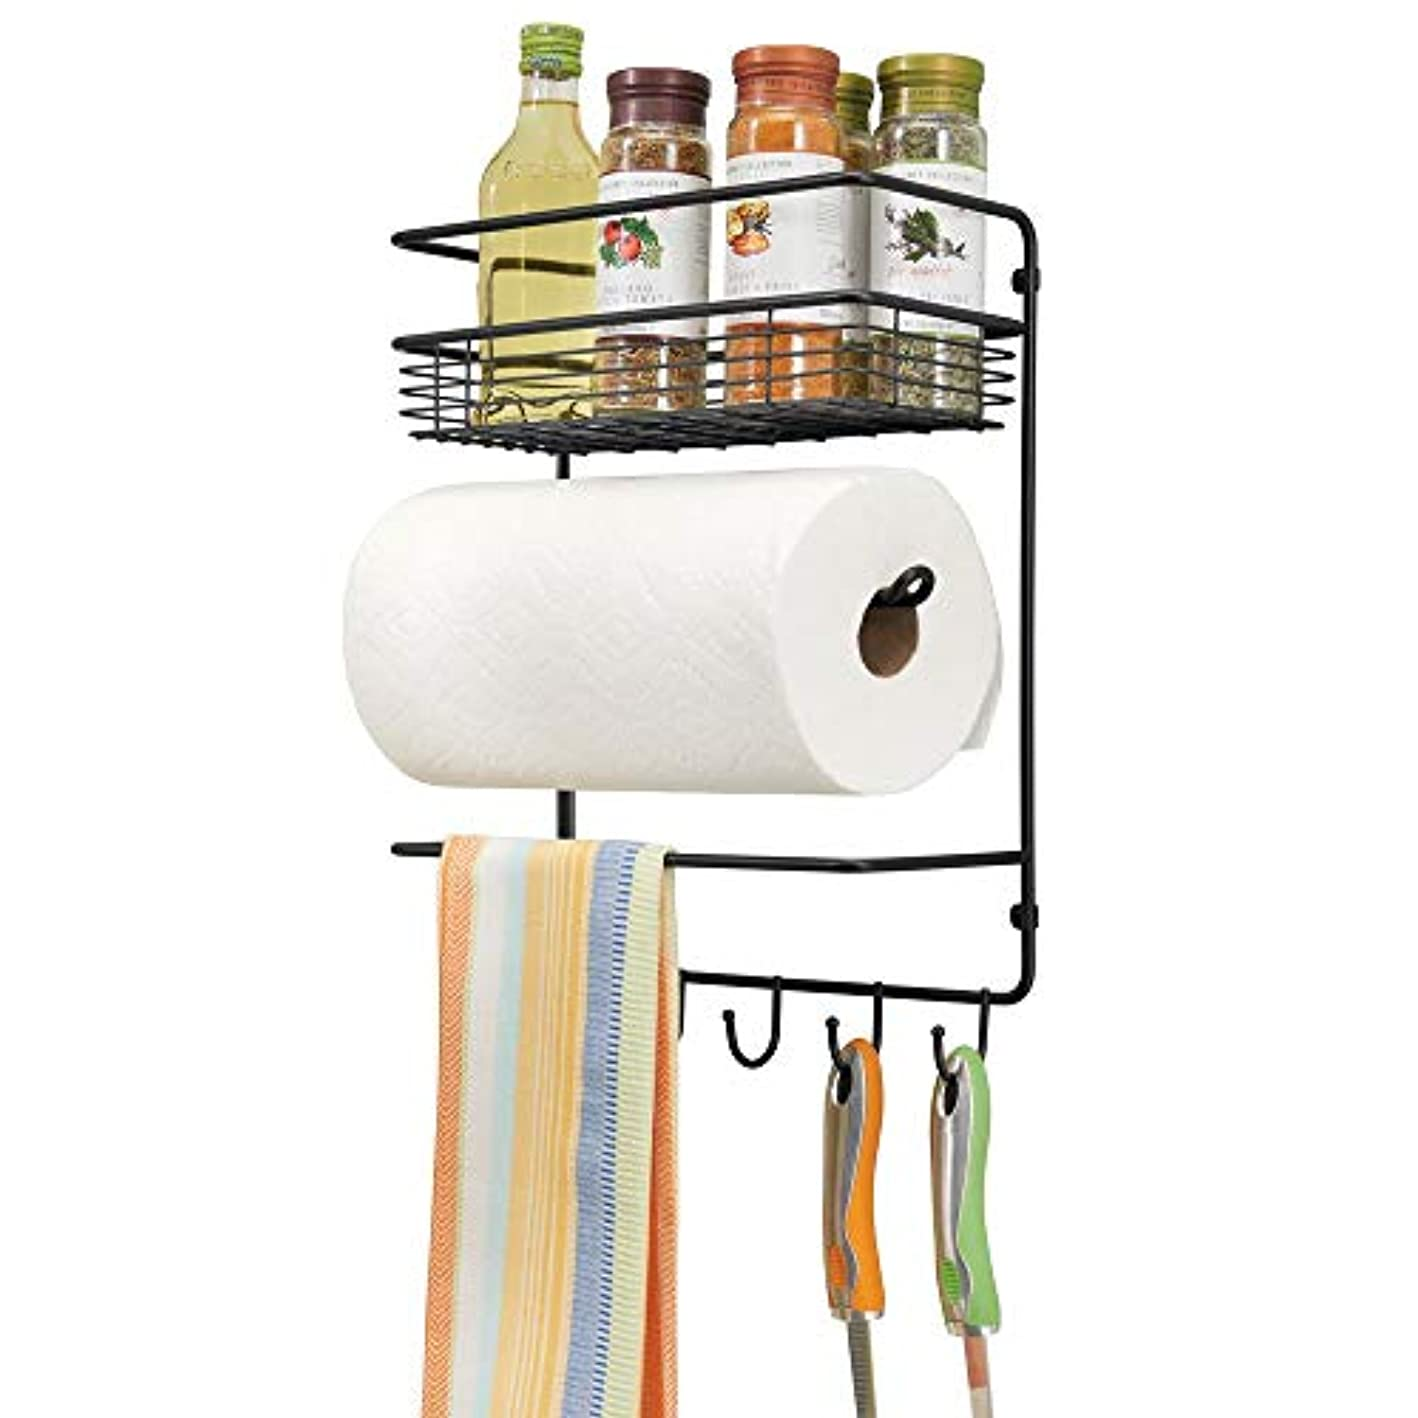 mDesign Metal Wall Mount Paper Towel Holder with Storage Shelf and Hooks for Kitchen, Pantry, Laundry, Garage Organization - Holds Spices, Seasonings, Pot Holders, Cookware - Black